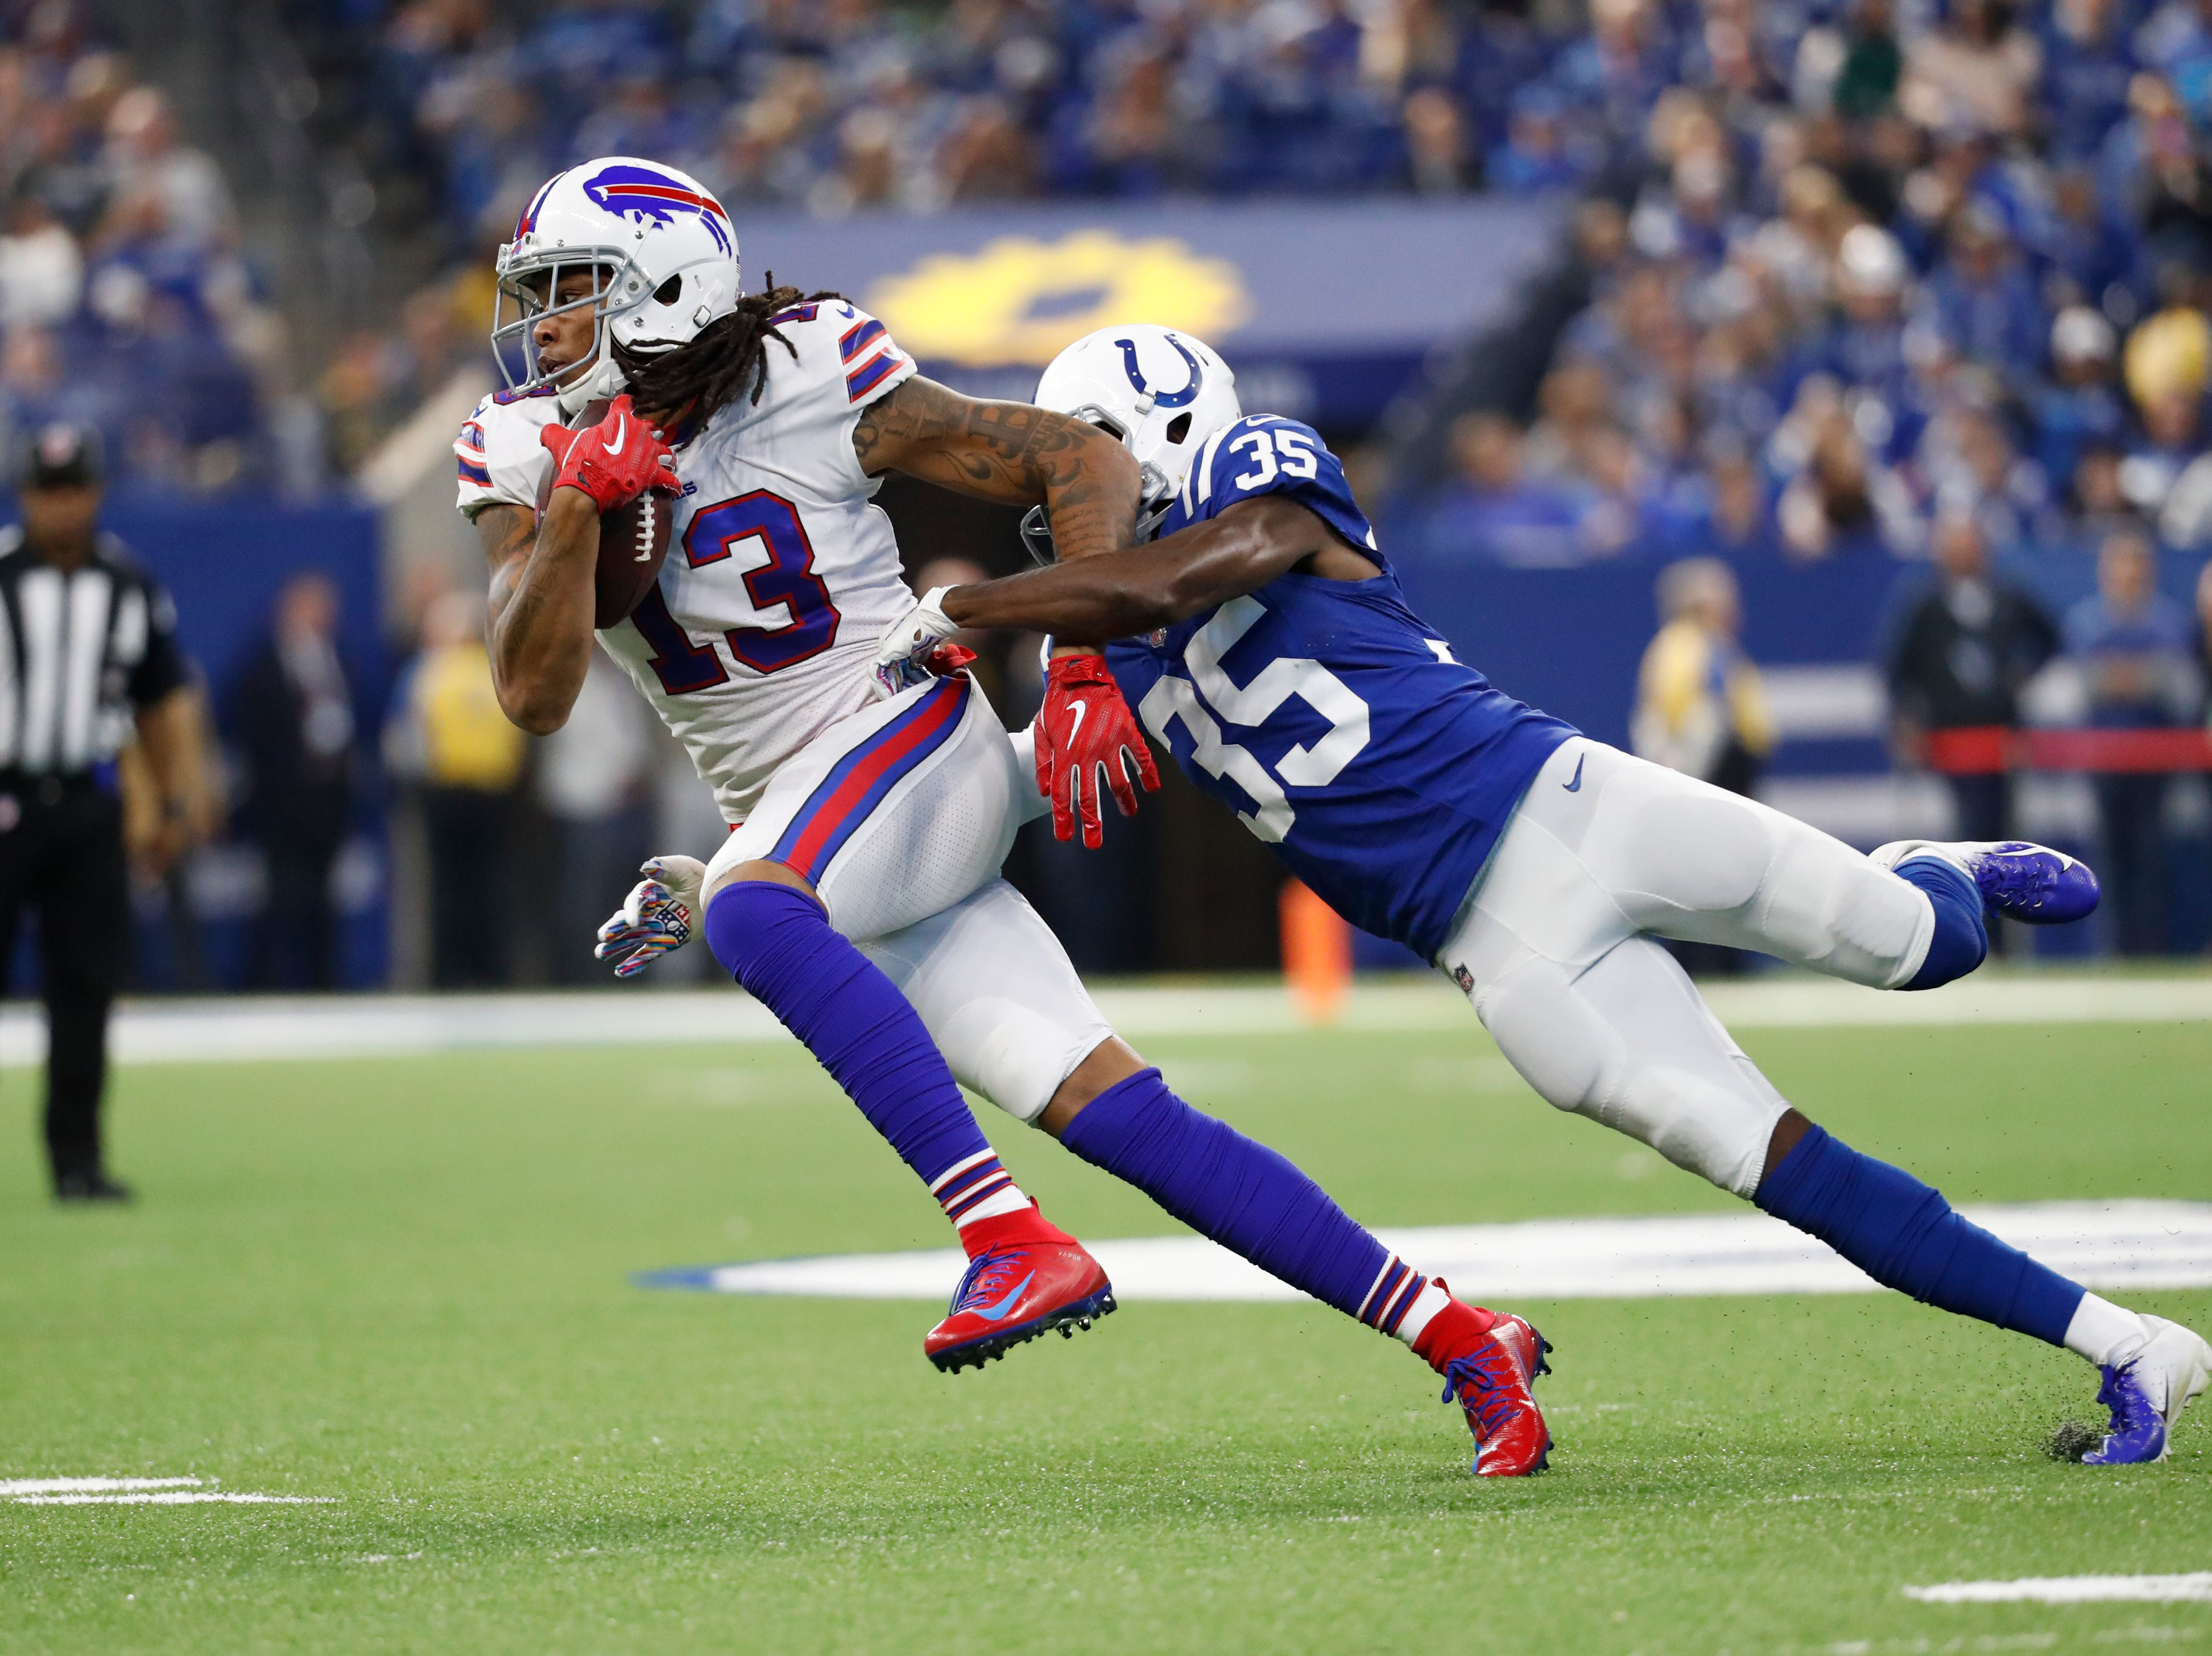 Indianapolis Colts defensive back Pierre Desir (35) tackles Buffalo Bills wide receiver Kelvin Benjamin (13) during the first half of an NFL football game in Indianapolis, Sunday, Oct. 21, 2018. (AP Photo/John Minchillo)